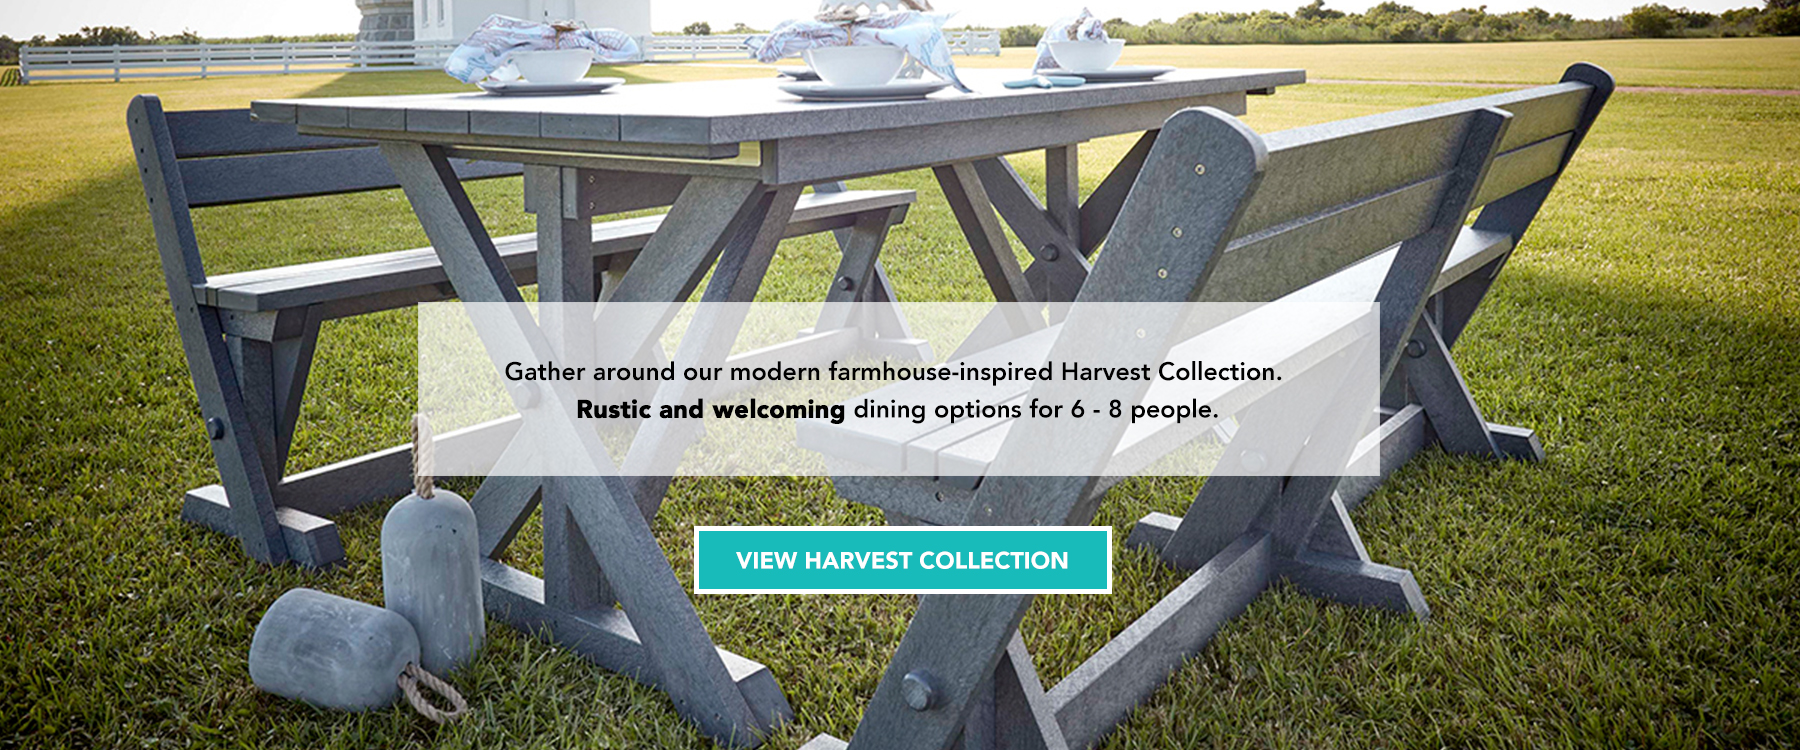 harvest collection